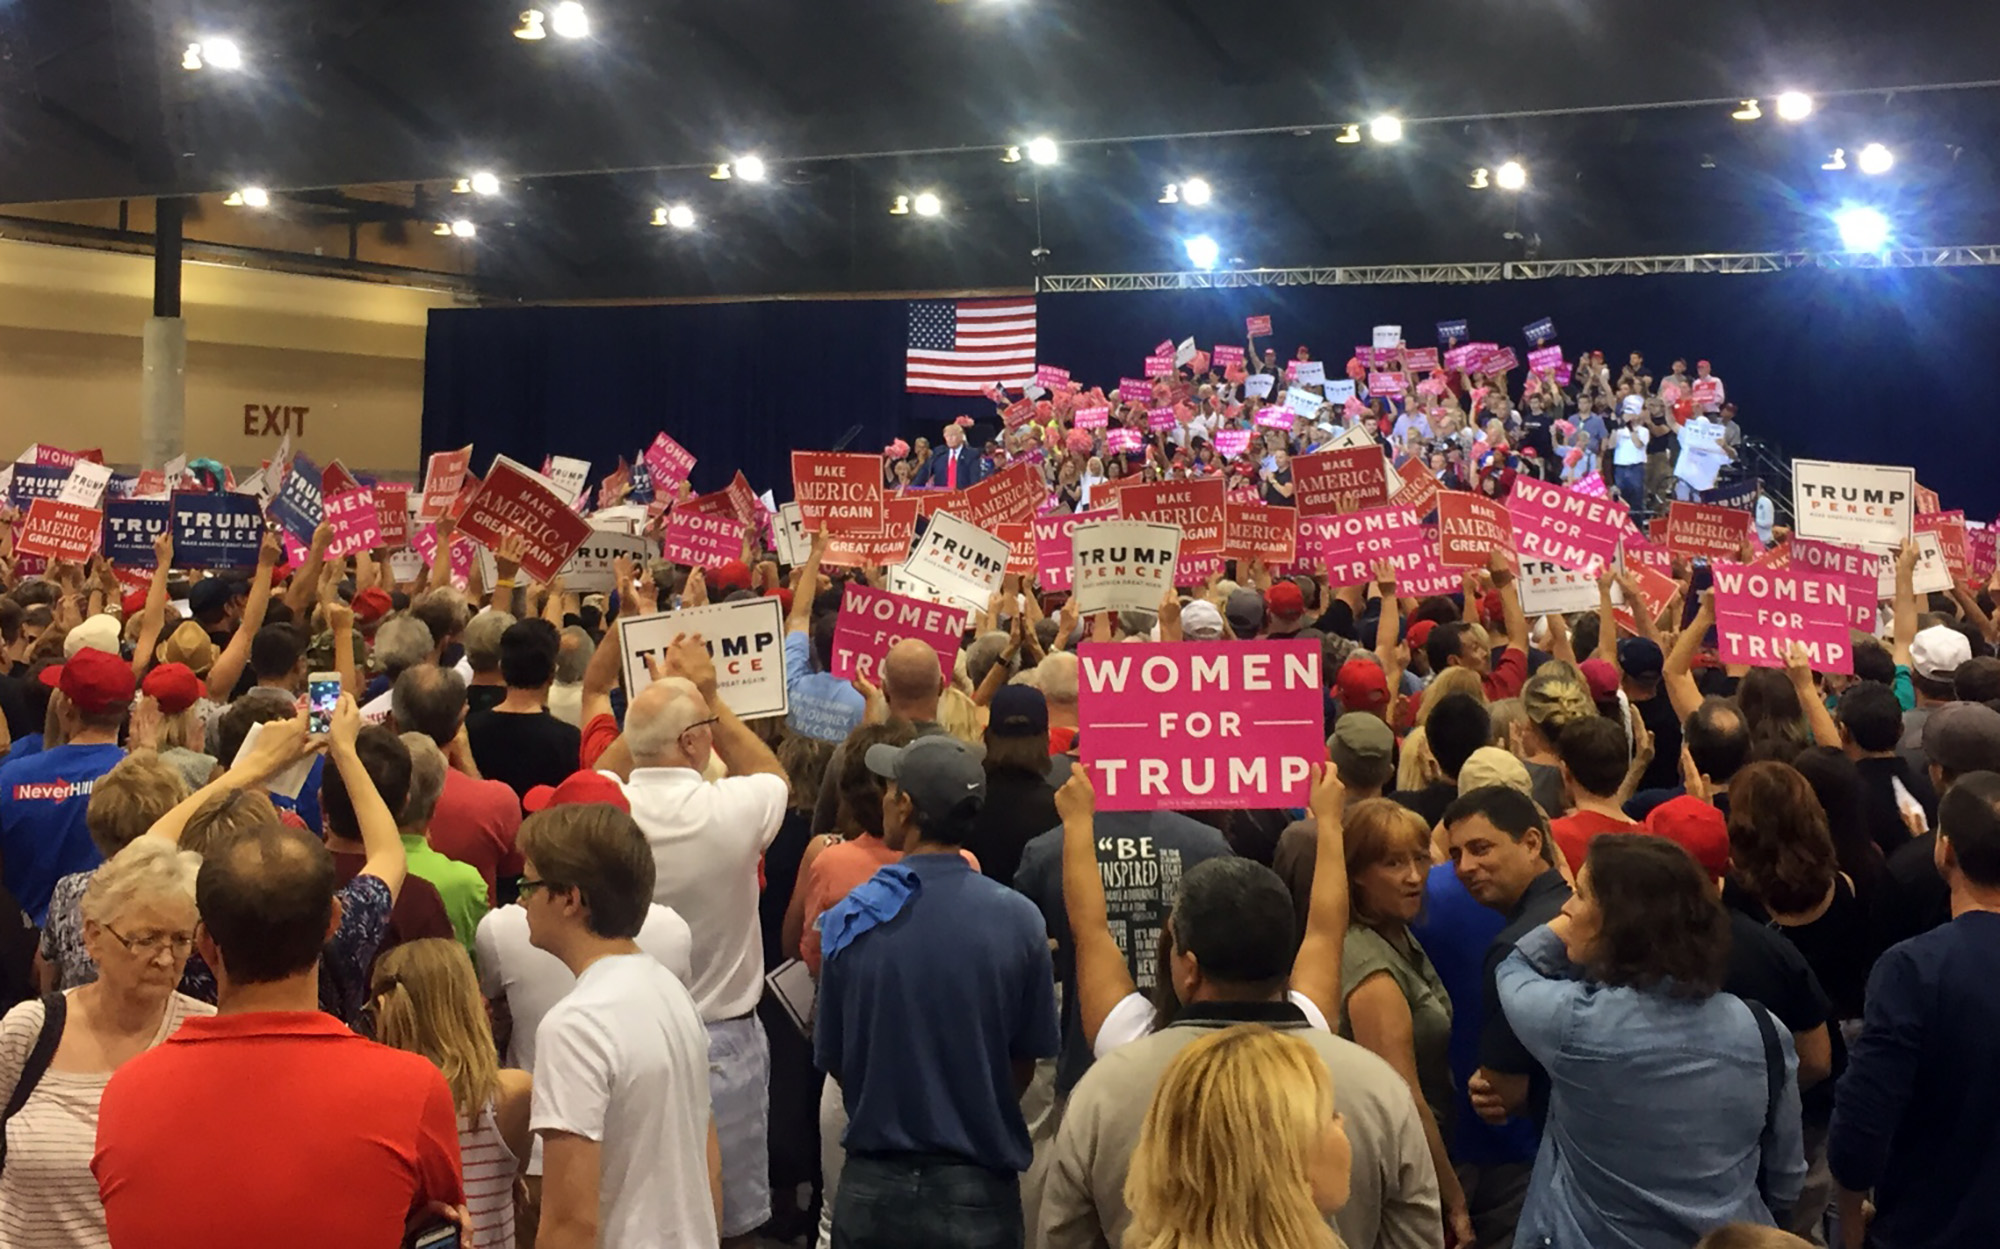 Several thousand people packed the Phoenix Convention Center to see Donald Trump on his seventh campaign visit to Arizona. (Photo by Karla Liriano/Cronkite News